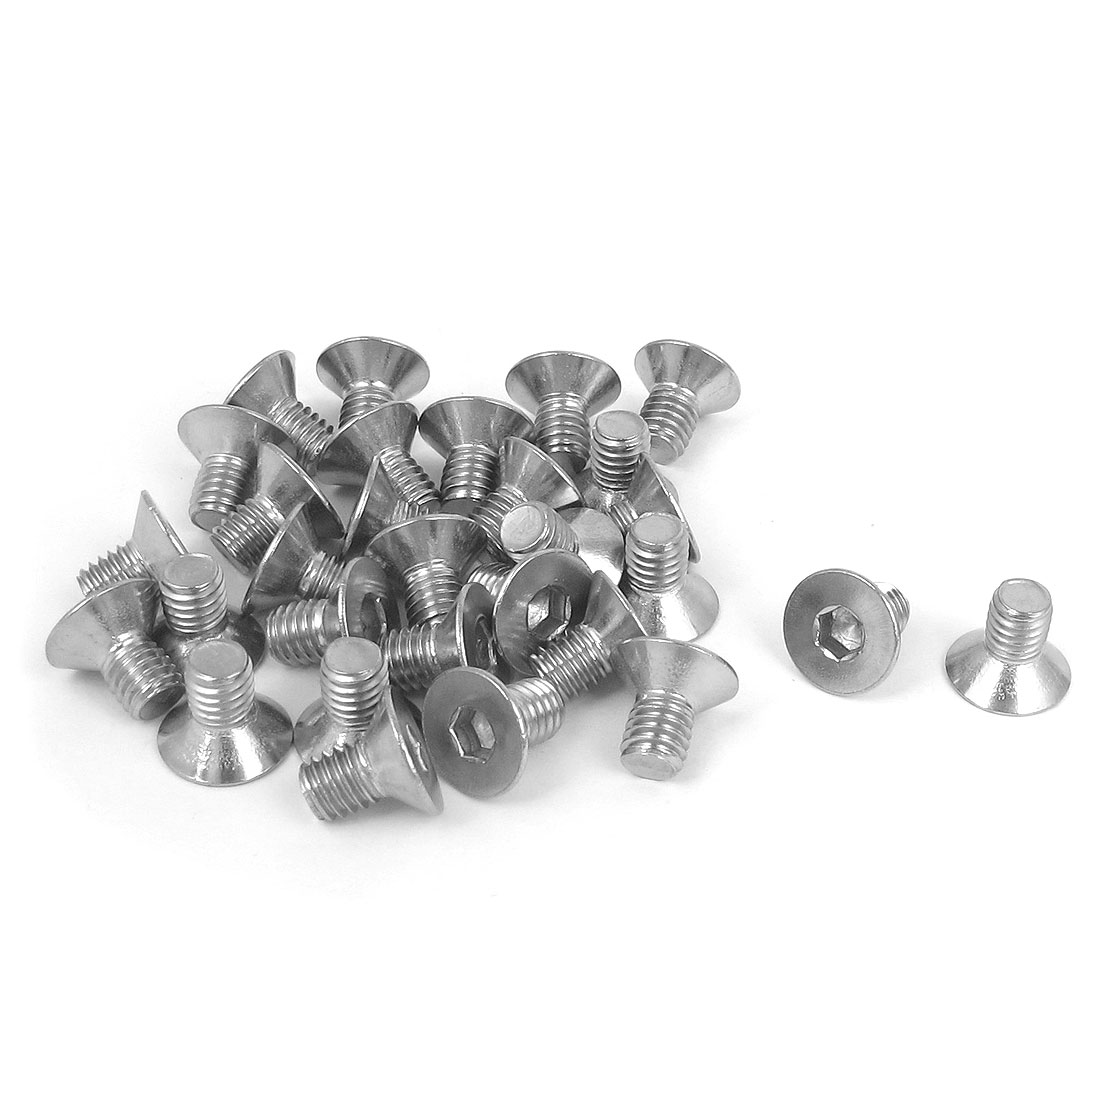 M6 x 10mm Metric 304 Stainless Steel Hex Socket Countersunk Flat Head Screw Bolts 30PCS